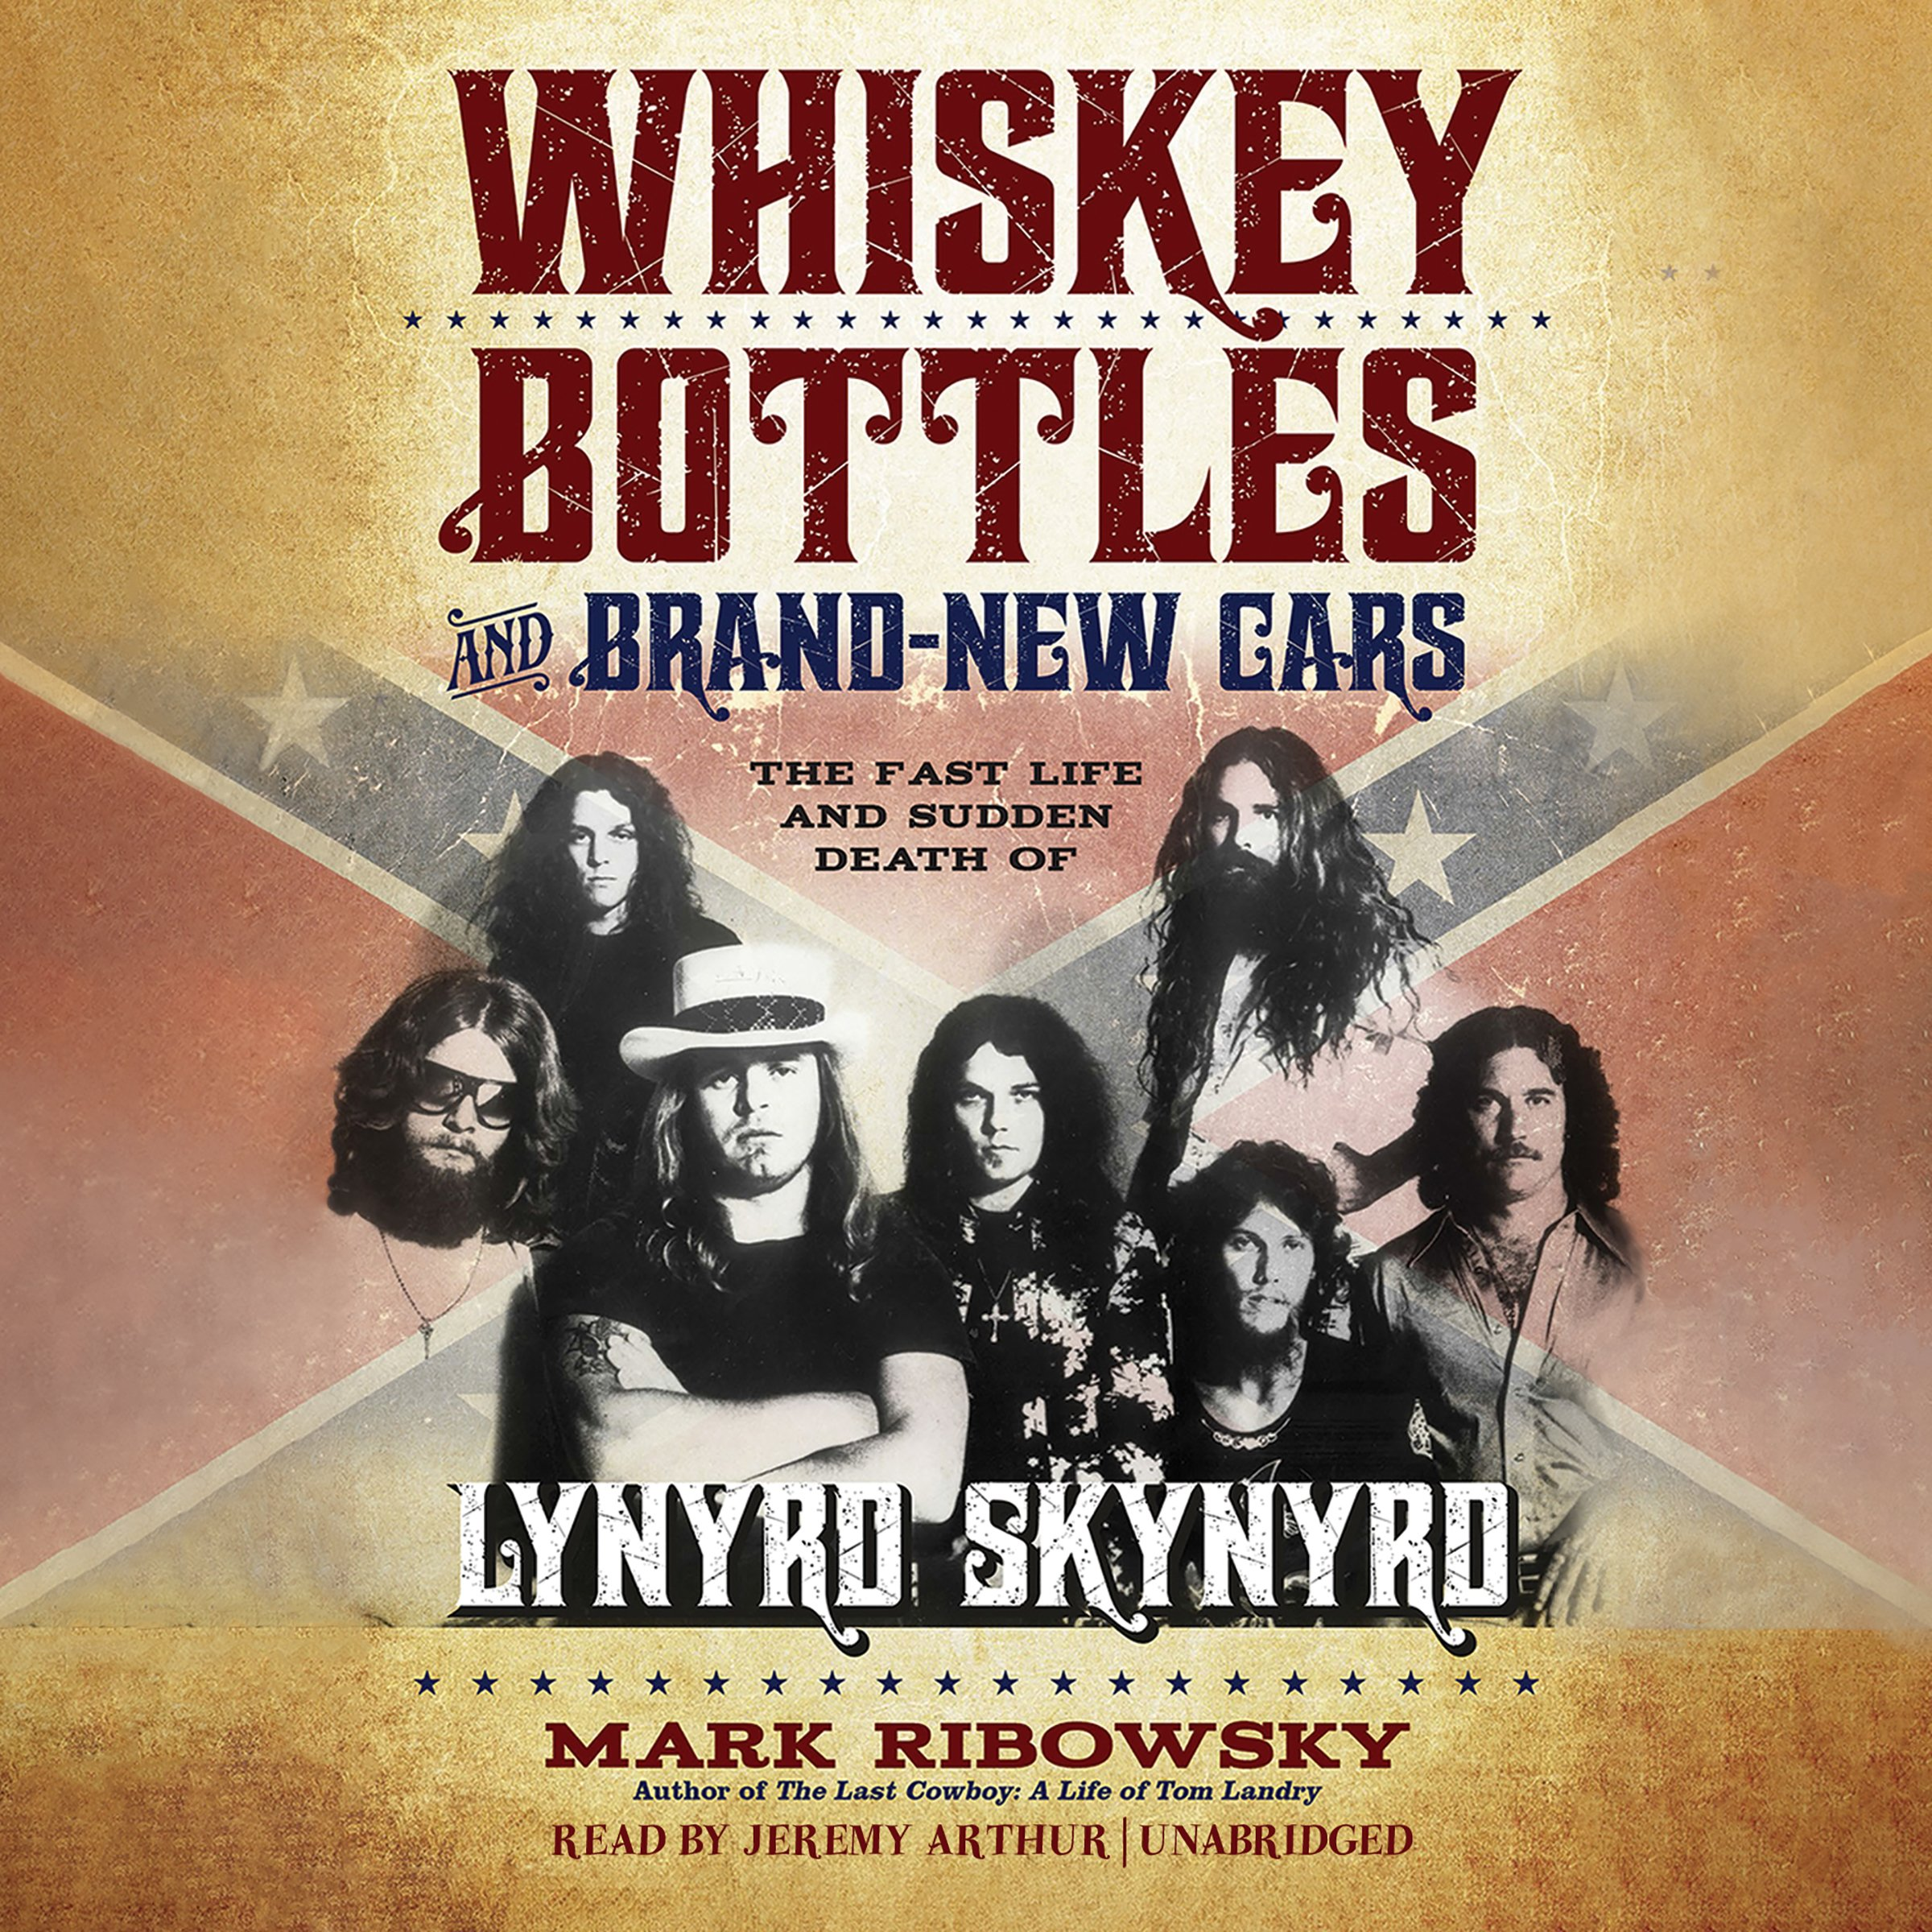 Whiskey Bottles and Brand-New Cars: The Fast Life and Sudden Death of Lynyrd Skynyrd pdf